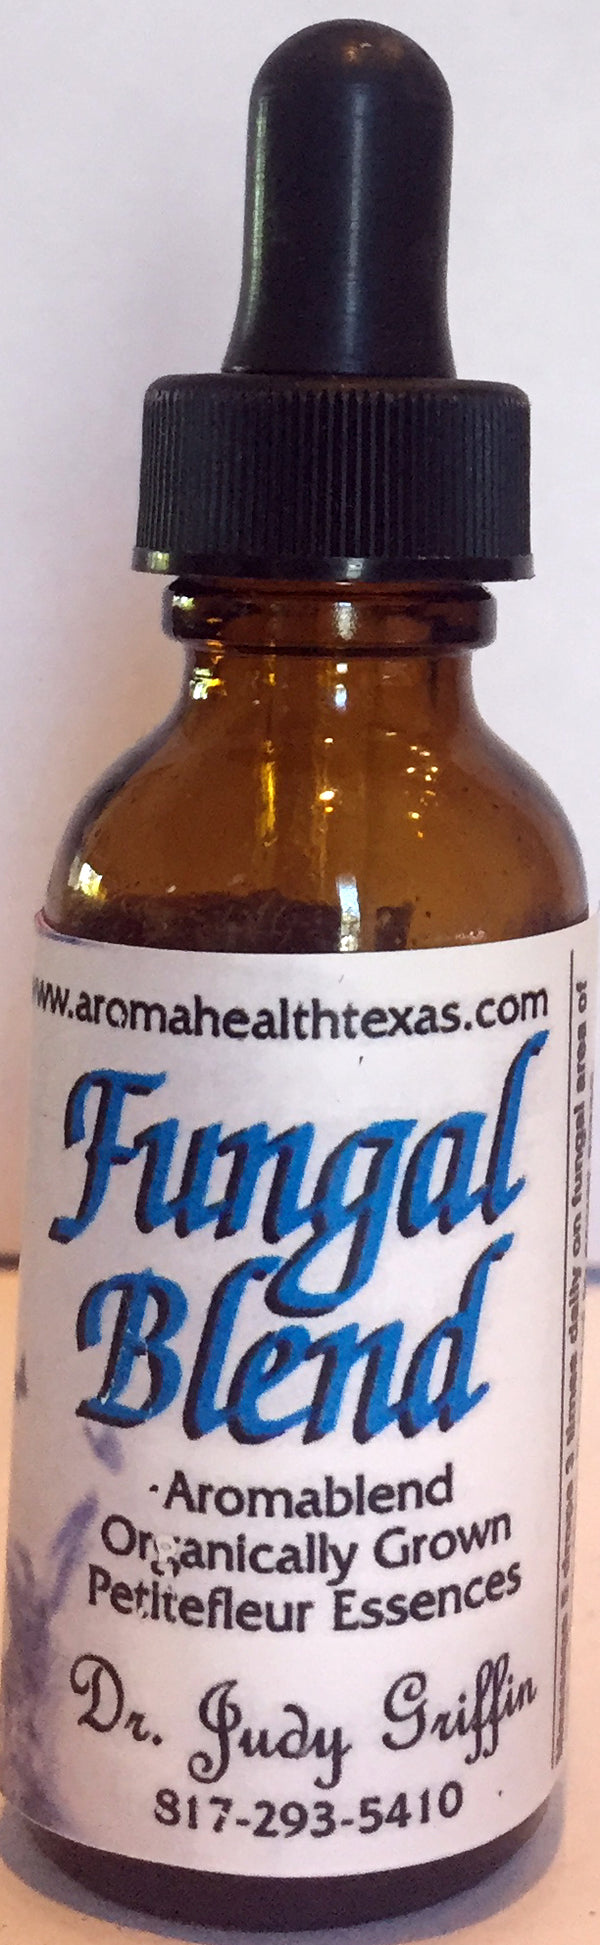 Fungal Aroma Blend (Tea tree and Eucalptus)